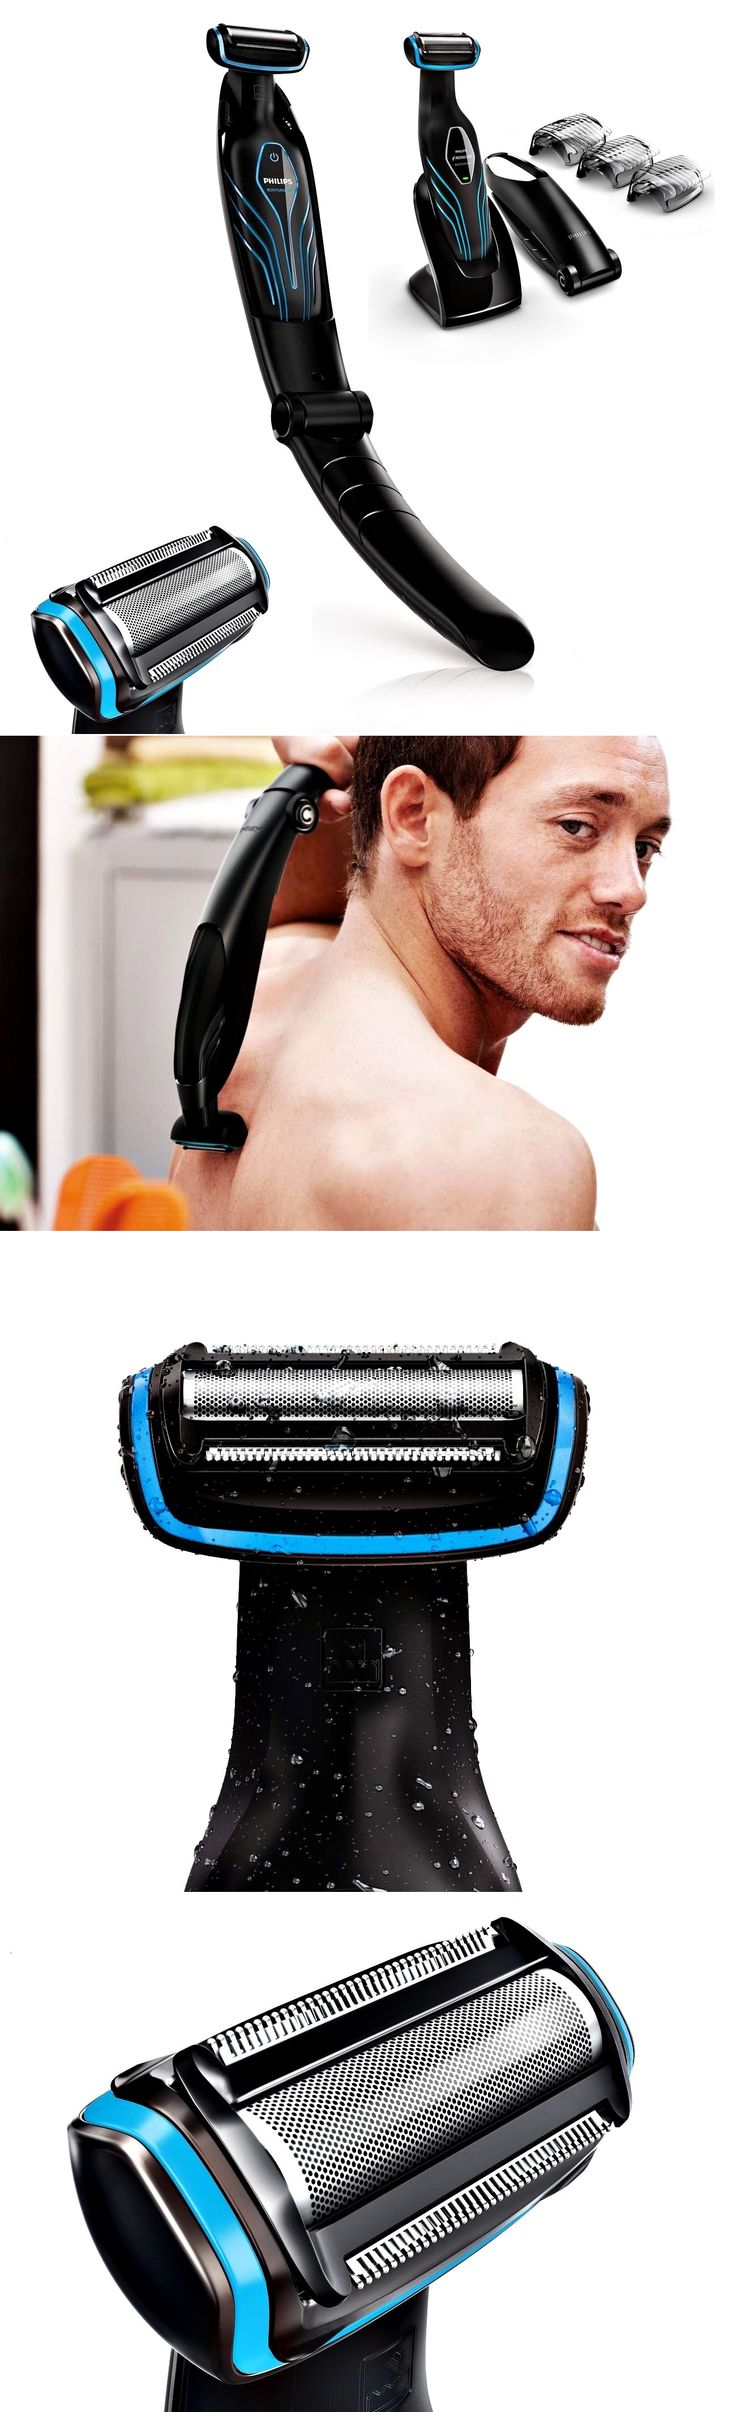 Mens Shavers: New Philips Body Groomer Shaver Men S Trimmer Groommig With Back Attachment -> BUY IT NOW ONLY: $164.51 on eBay!